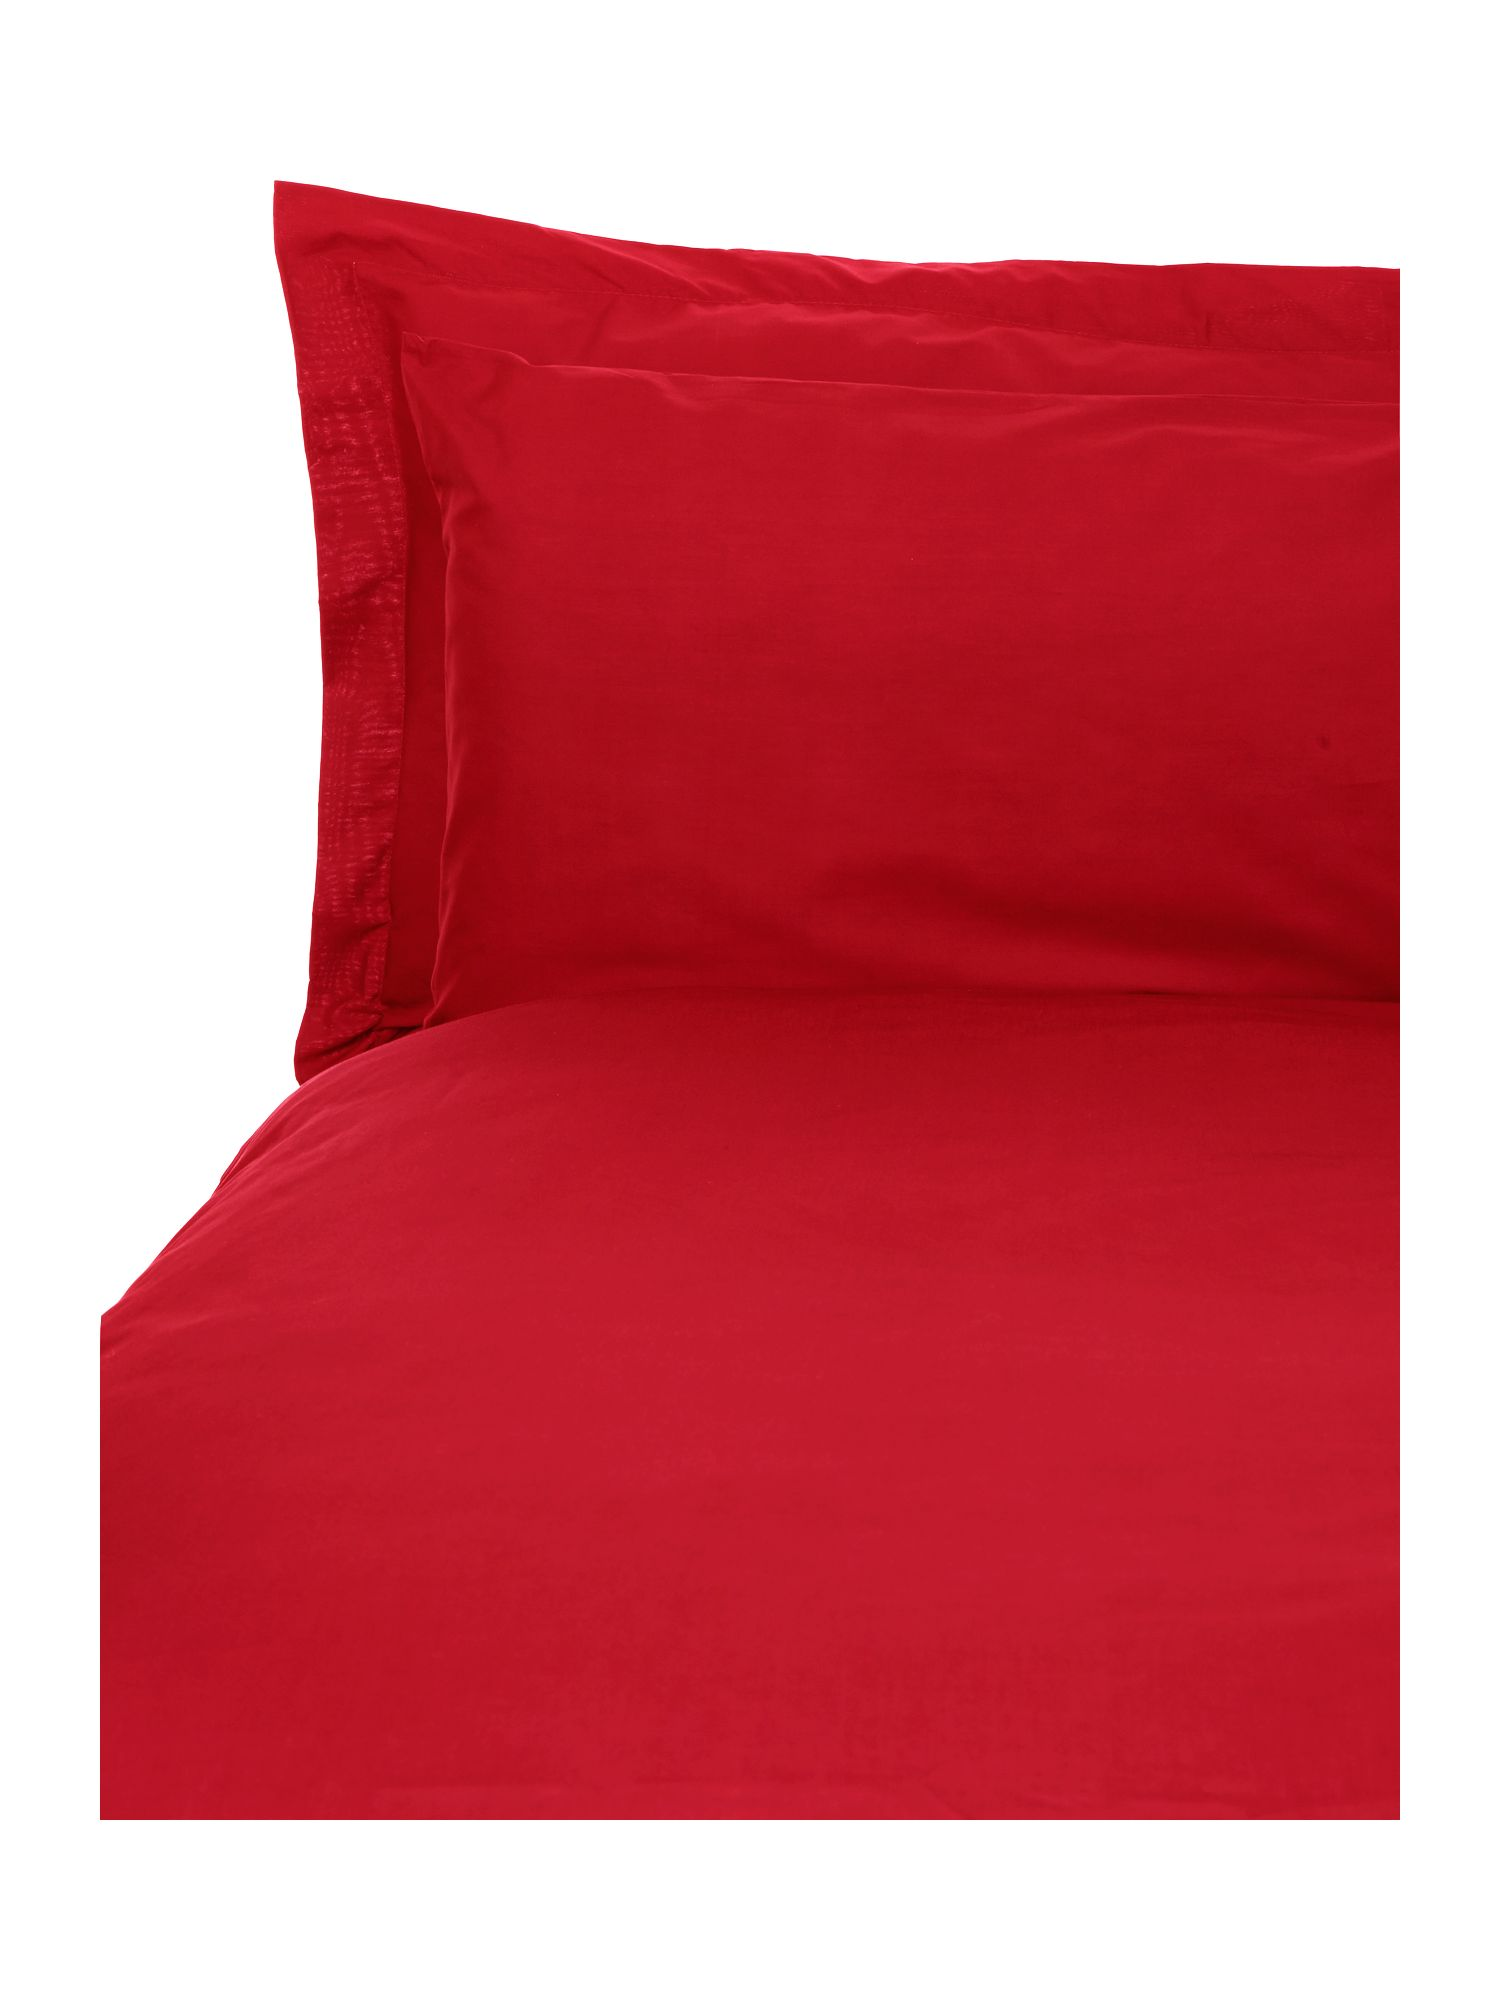 100% cotton housewife pillowcase red